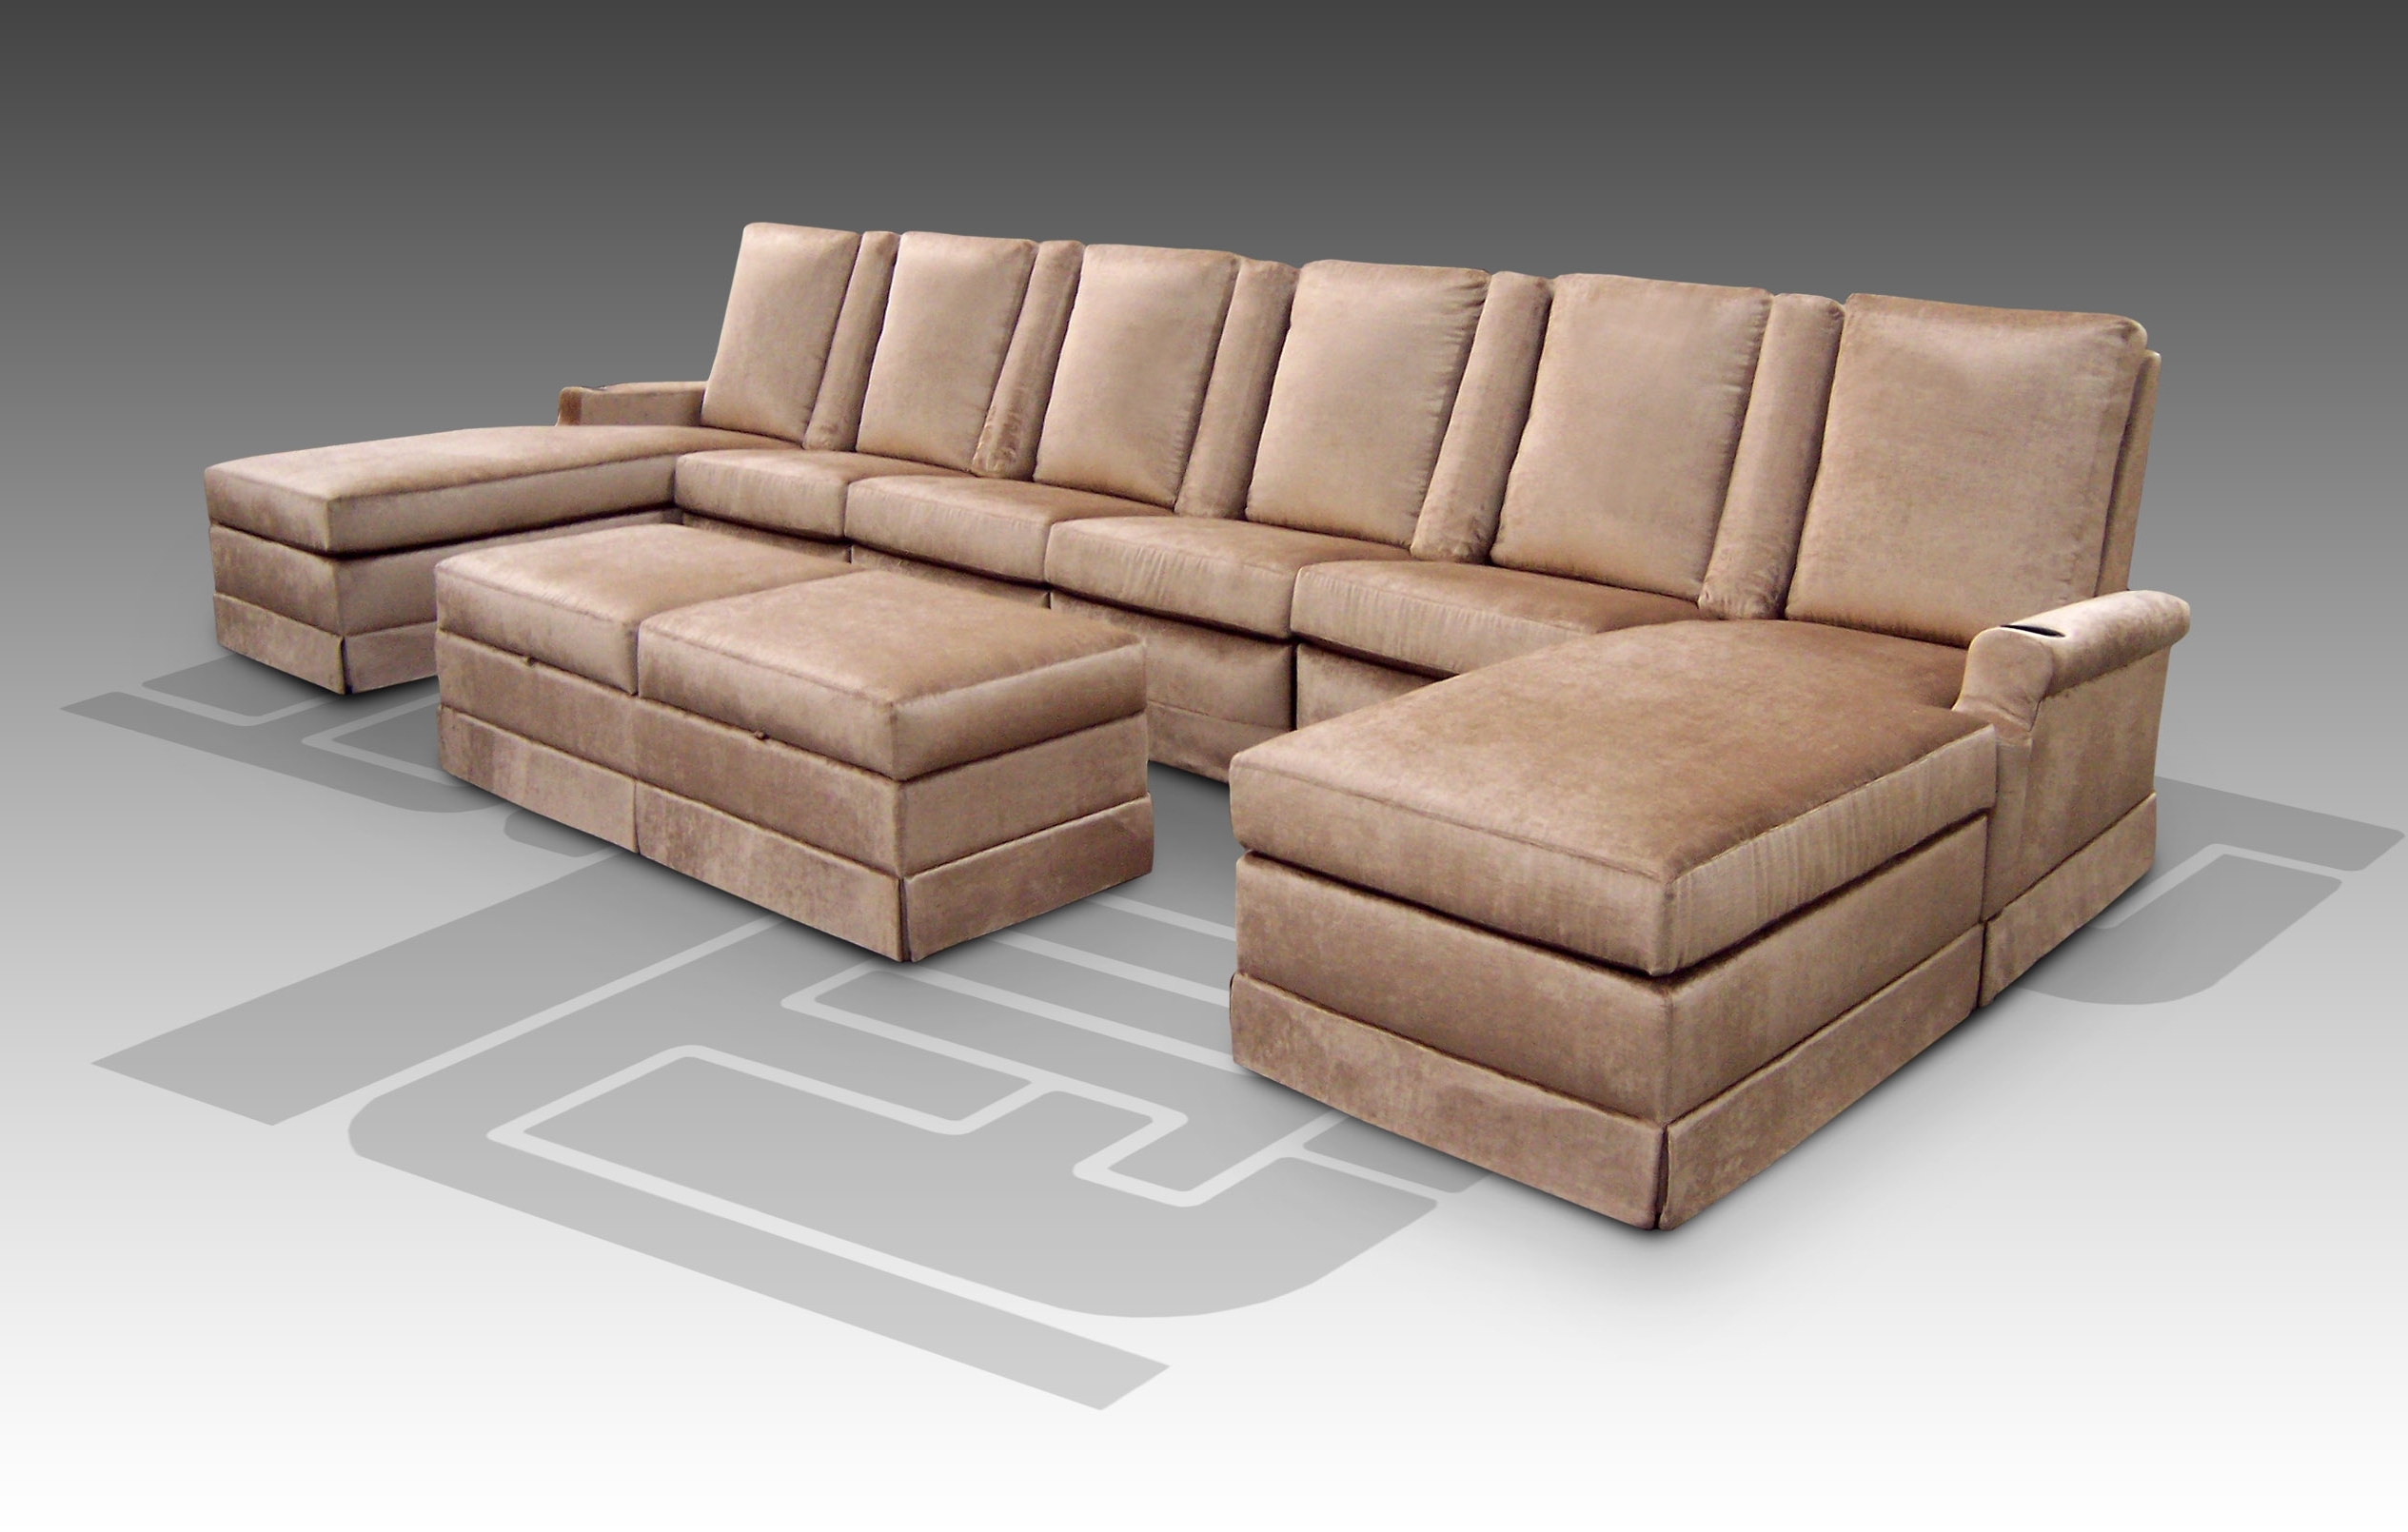 Well Known Sectional Sofa: Theater Seating Sectional Sofa Home Theater Within Theatre Sectional Sofas (View 18 of 20)